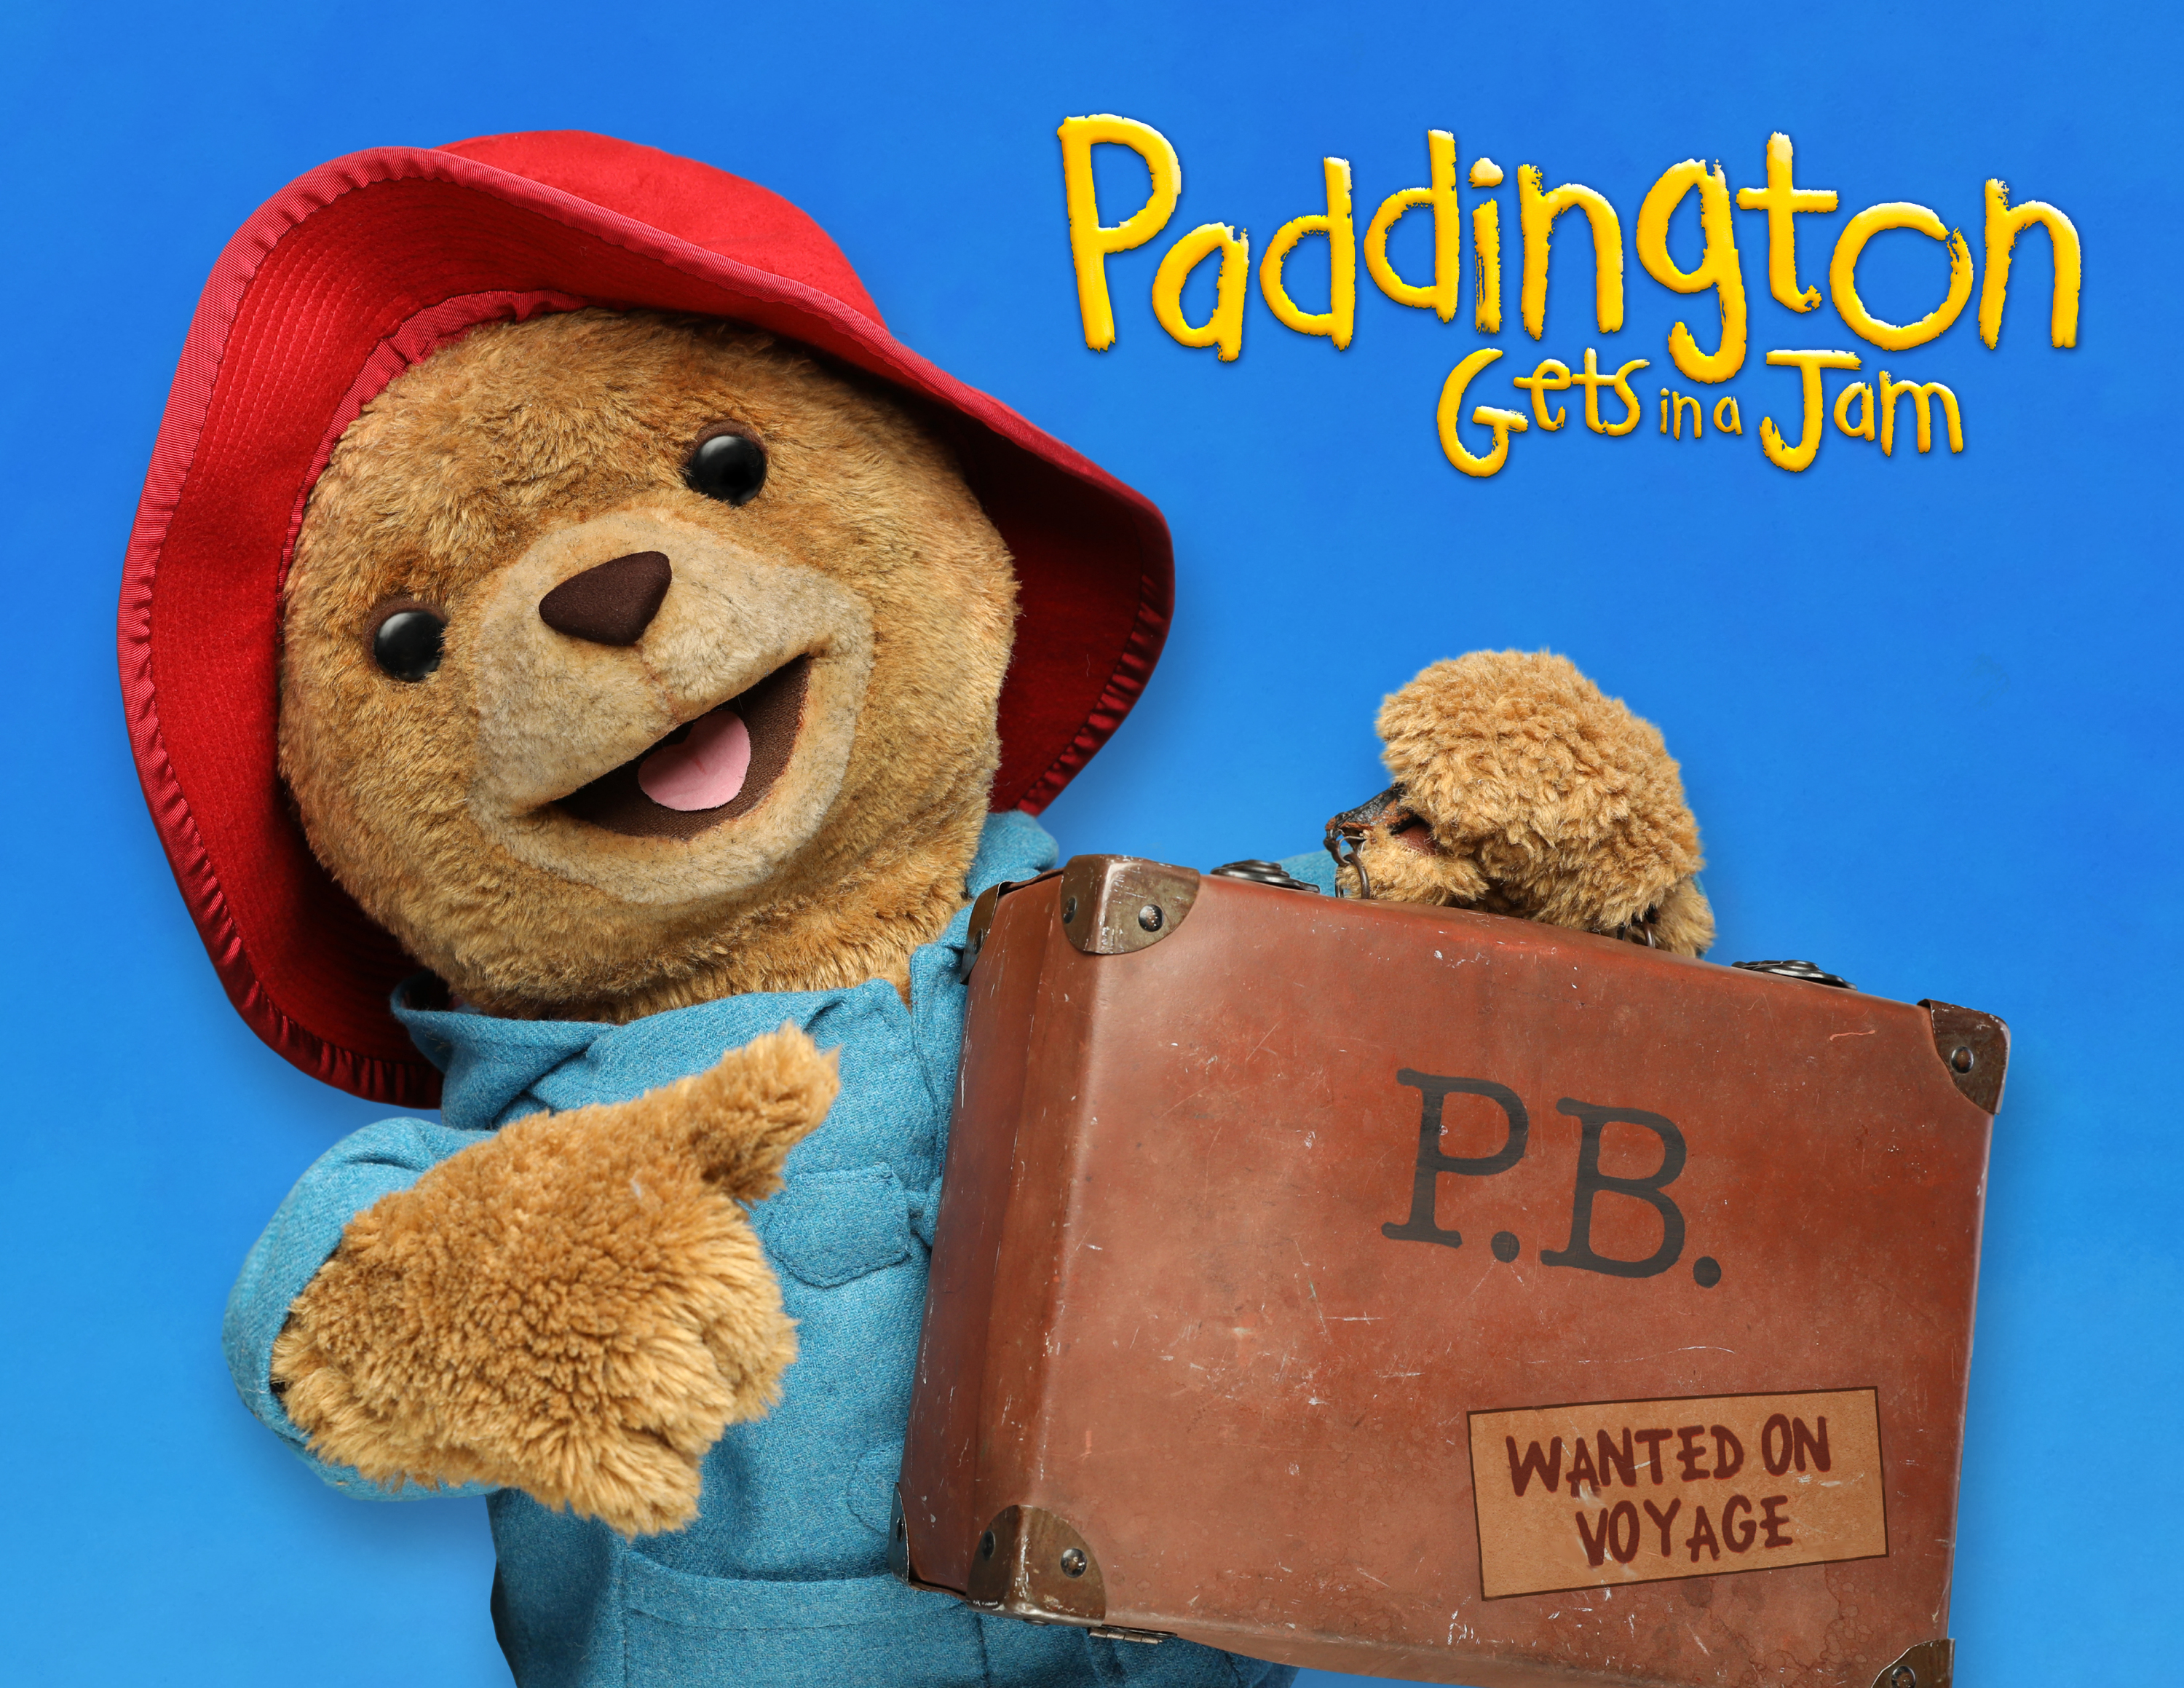 Paddington Gets in a Jam